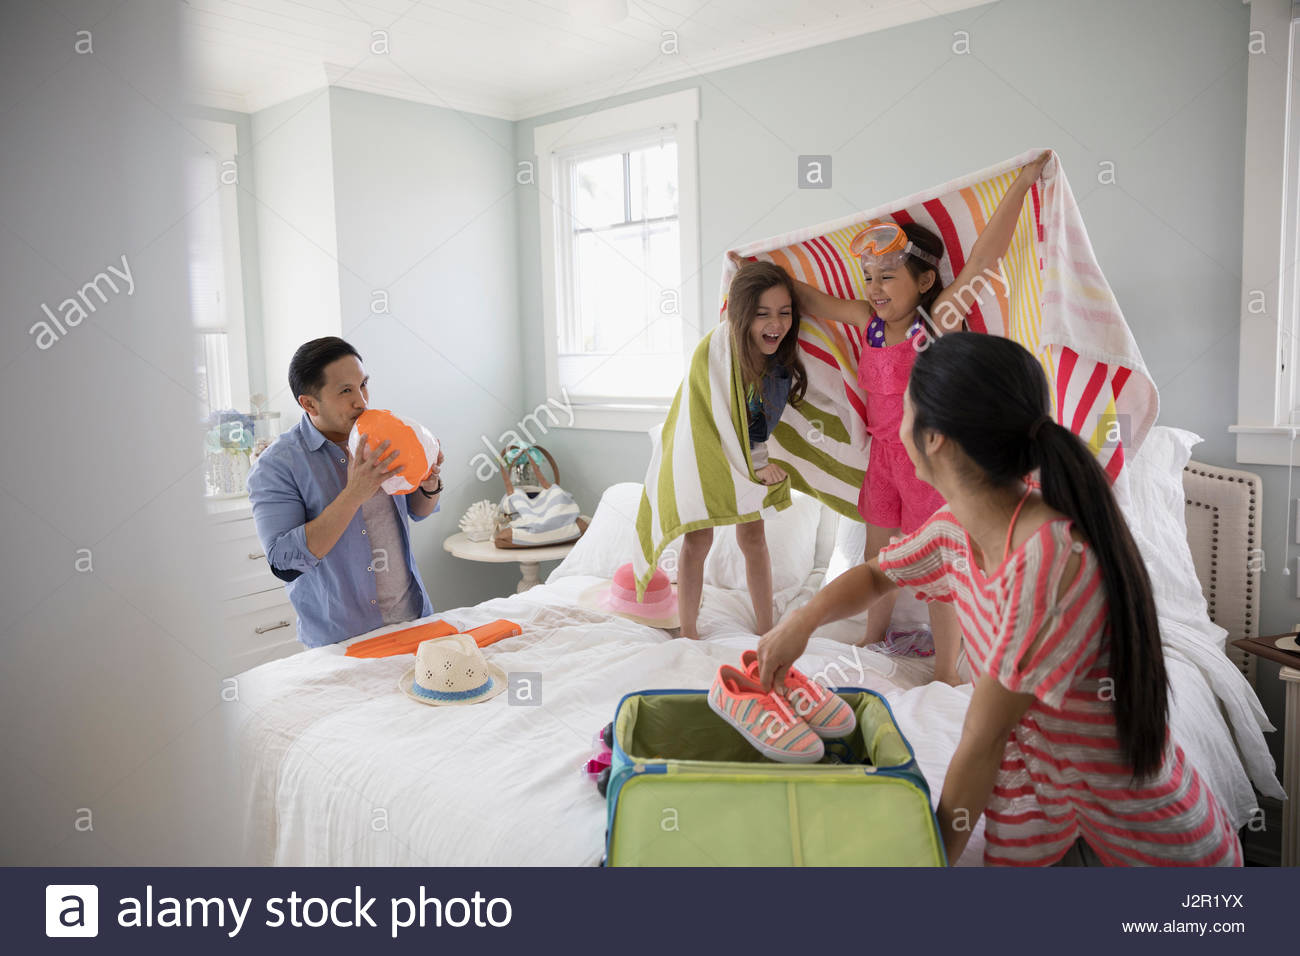 Family packing for vacation, playing on bed - Stock Image